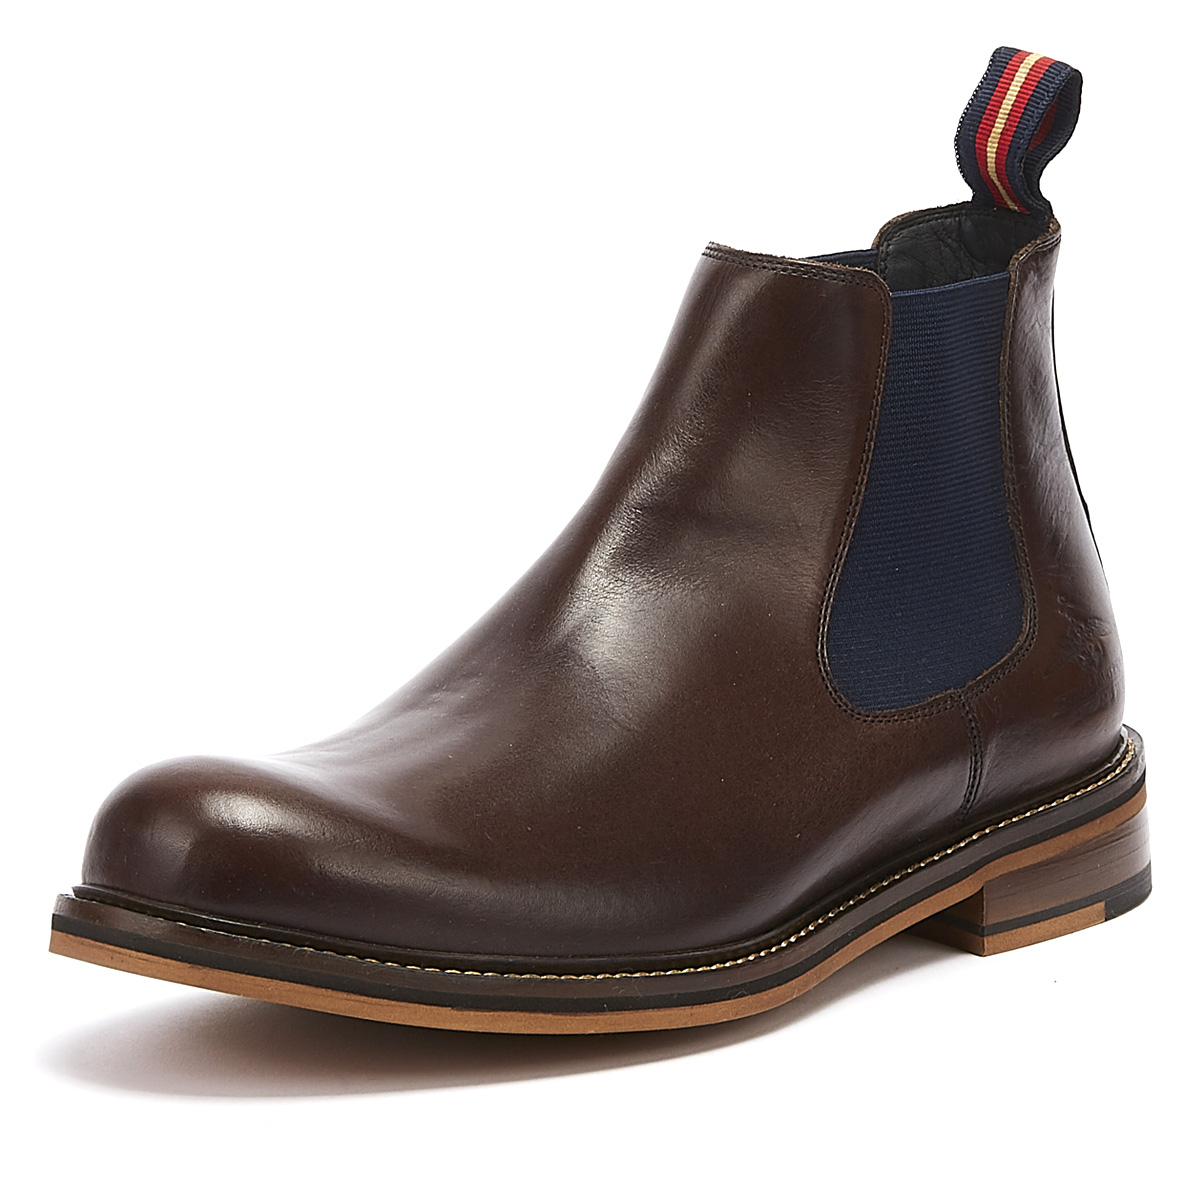 Details about Thomas Partridge Cranwell Mens Chocolate Brown Leather Chelsea Boots Ankle Shoes